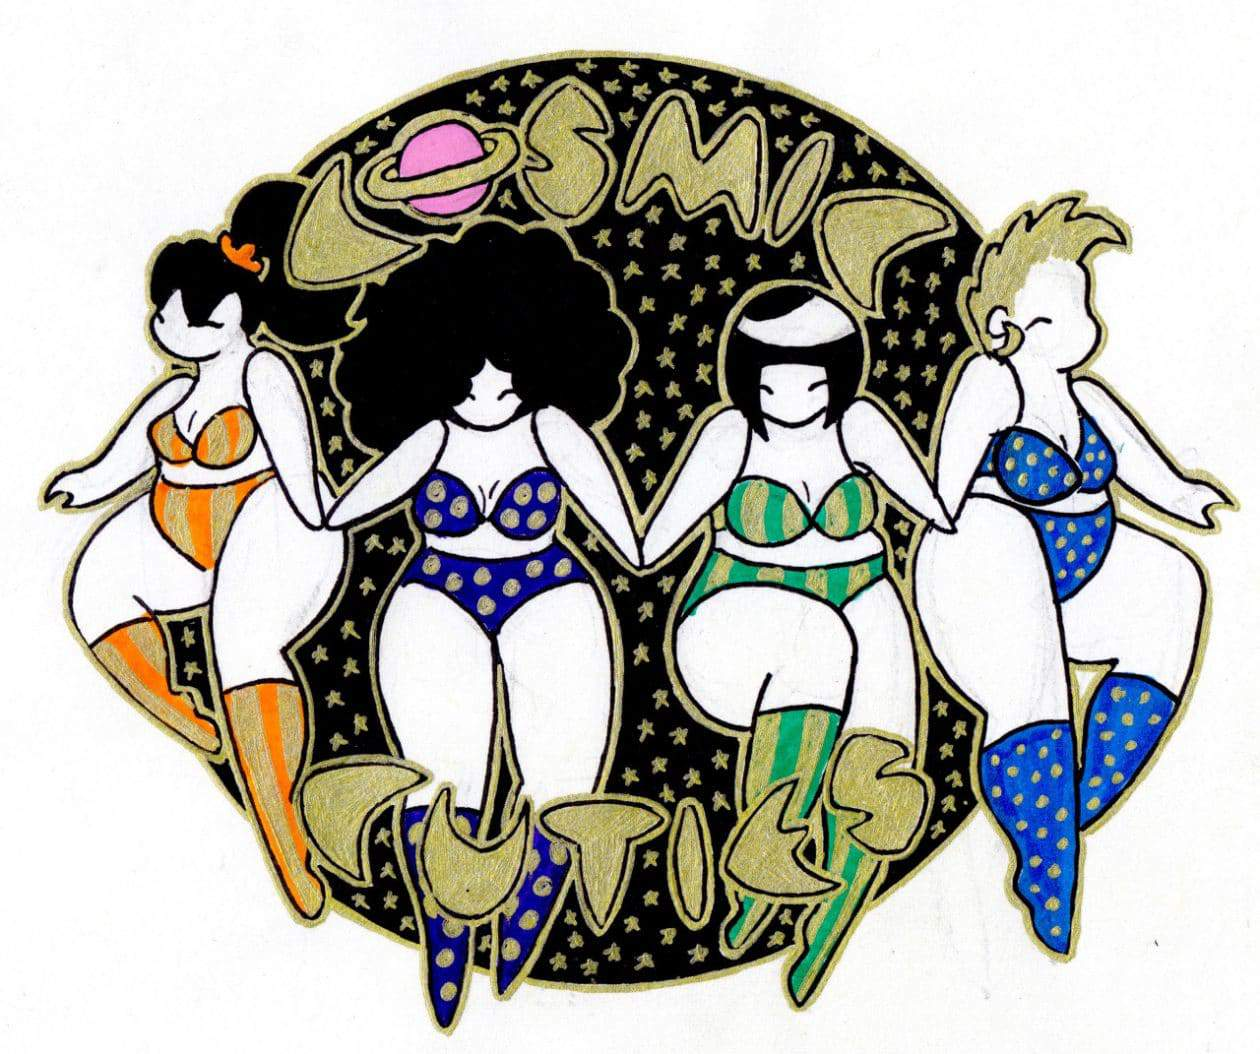 Plus Size Art Spotlight: Cosmic Cuties by High School Student Mikhaila Nodel